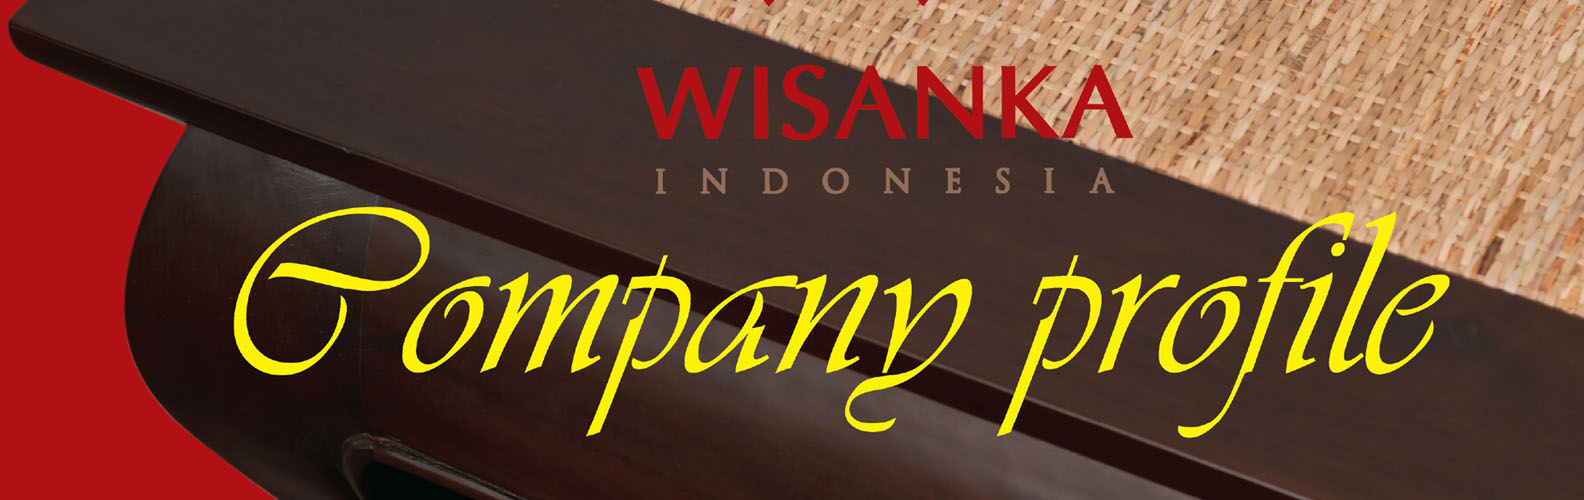 company profile indonesia colonial furniture